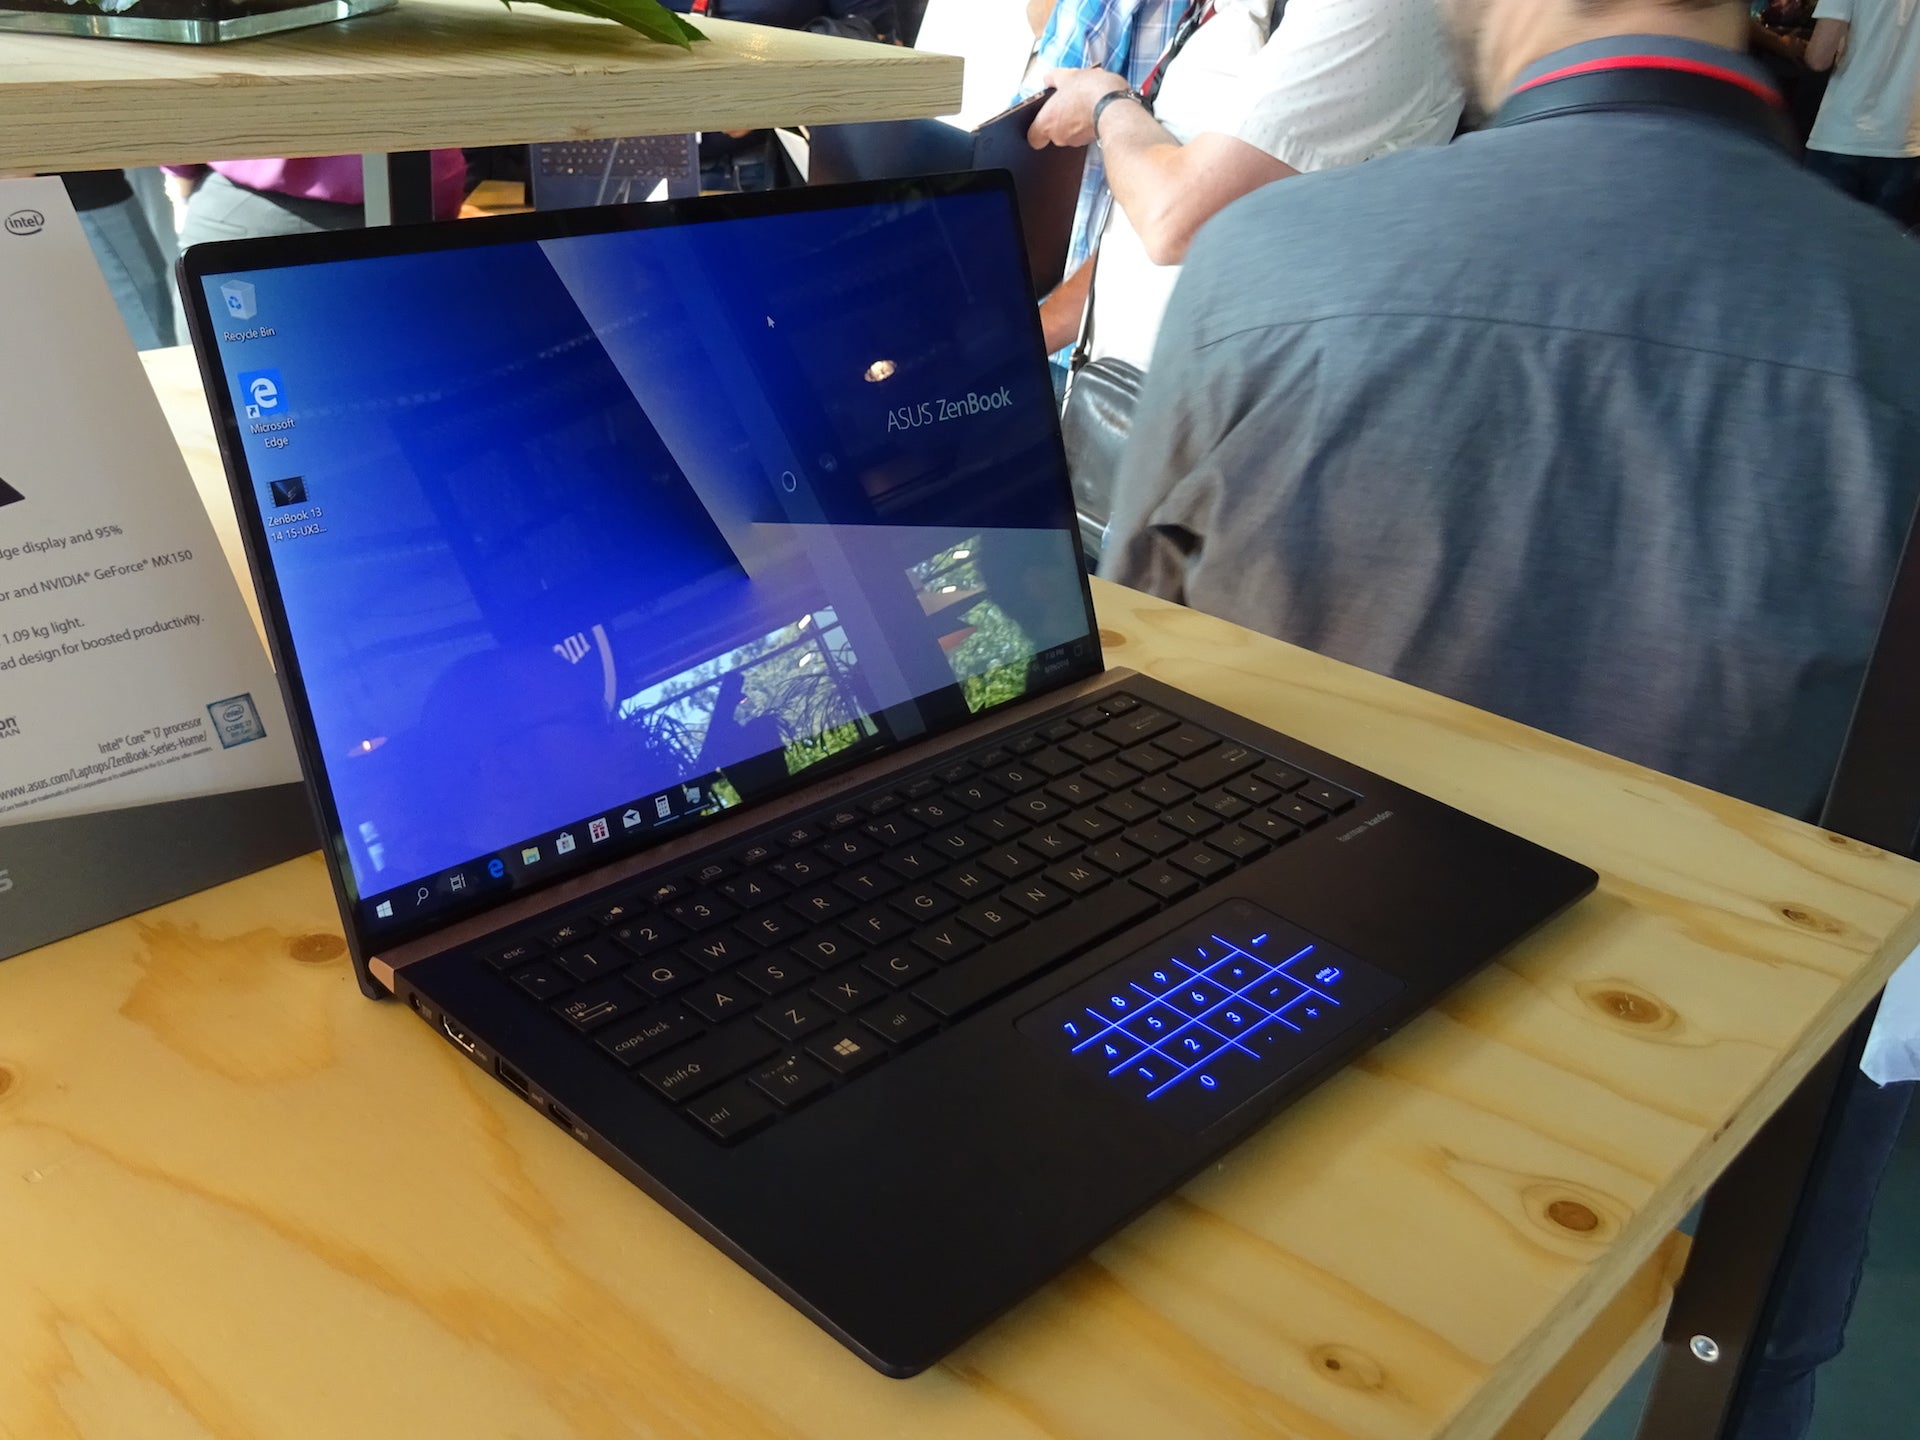 Asus Zenbook 2018 Detailed Displays Powerful Portables